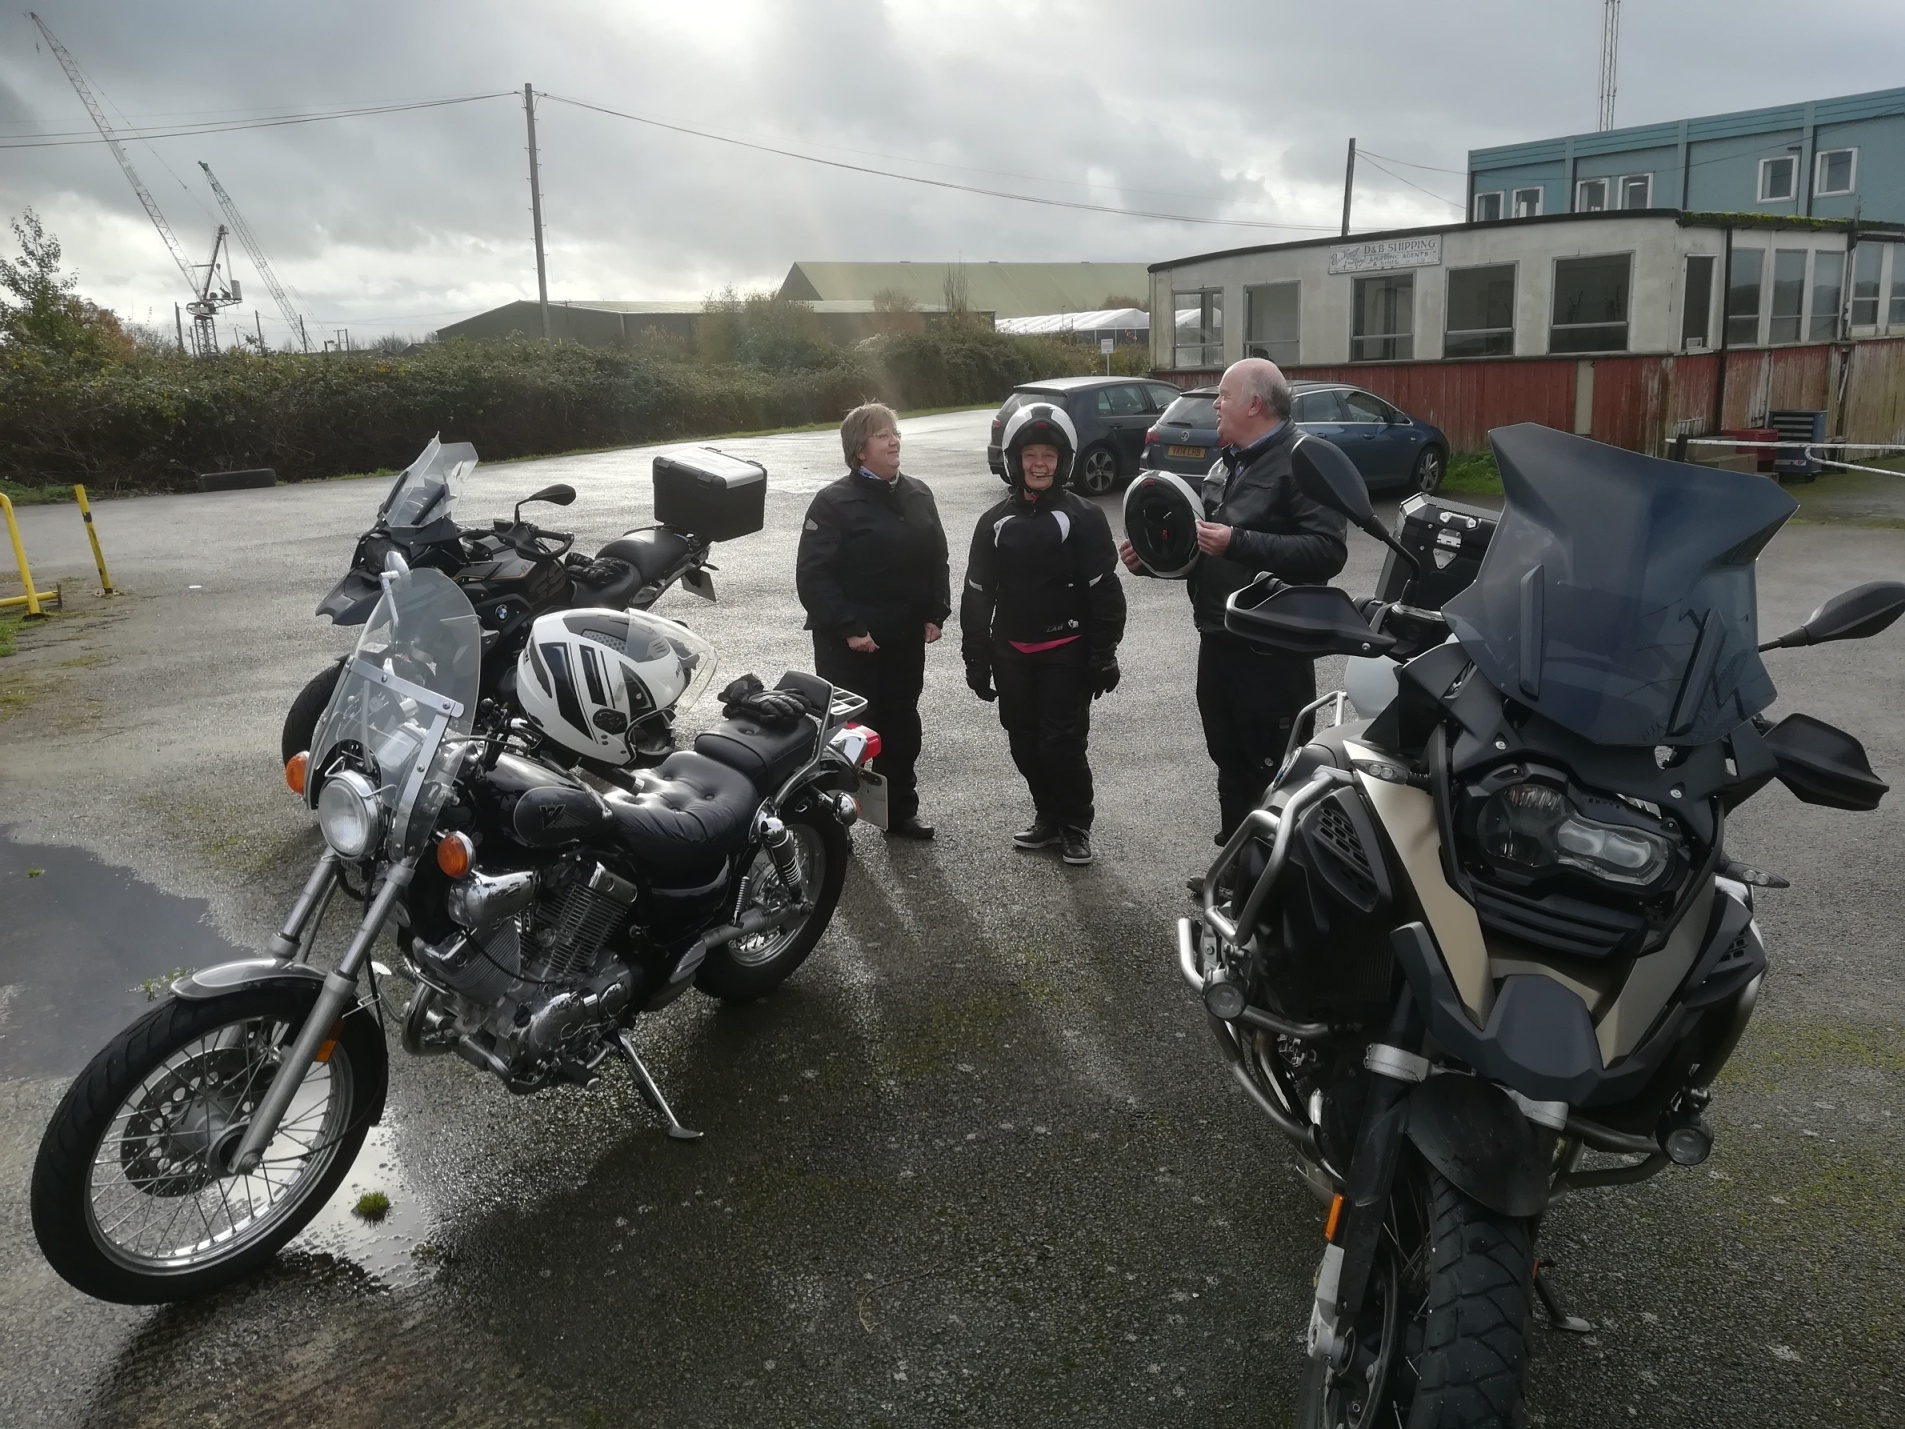 Motorcycling Group